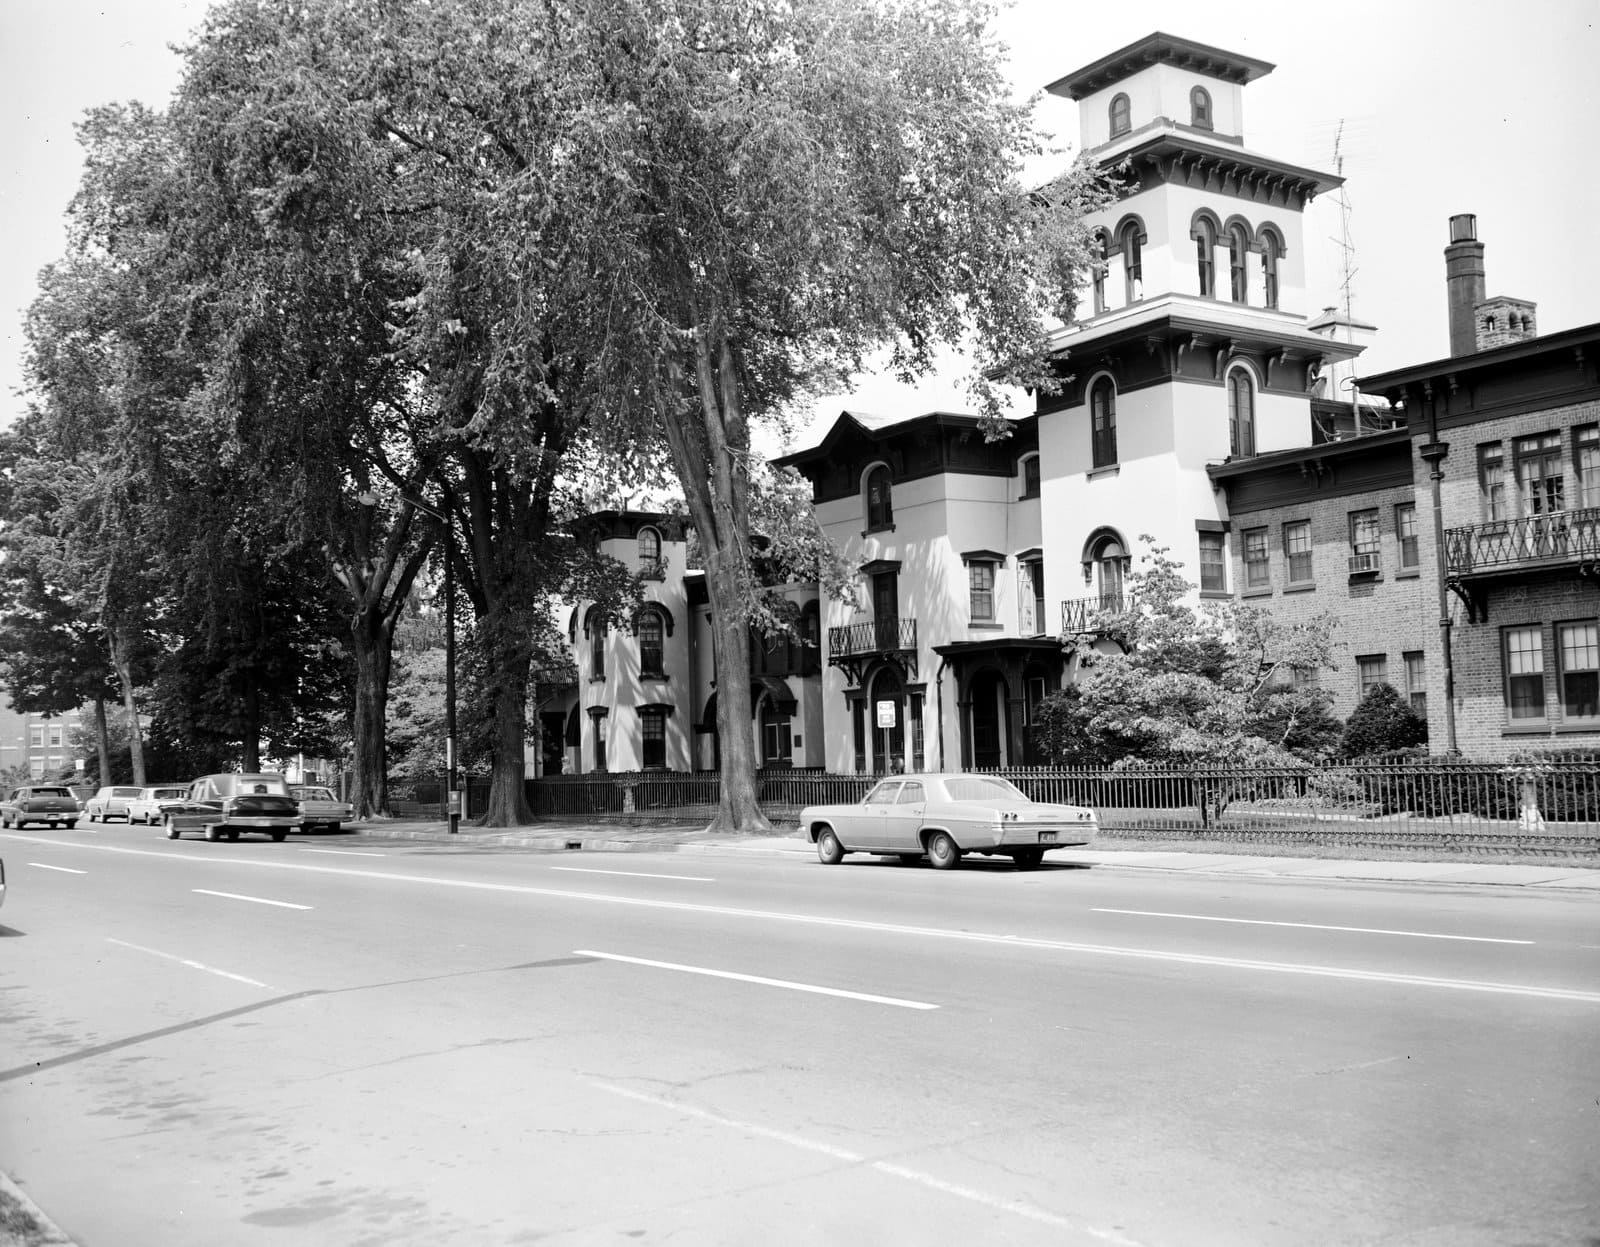 Armsmear - Colt mansion seen in the 1960s (1)